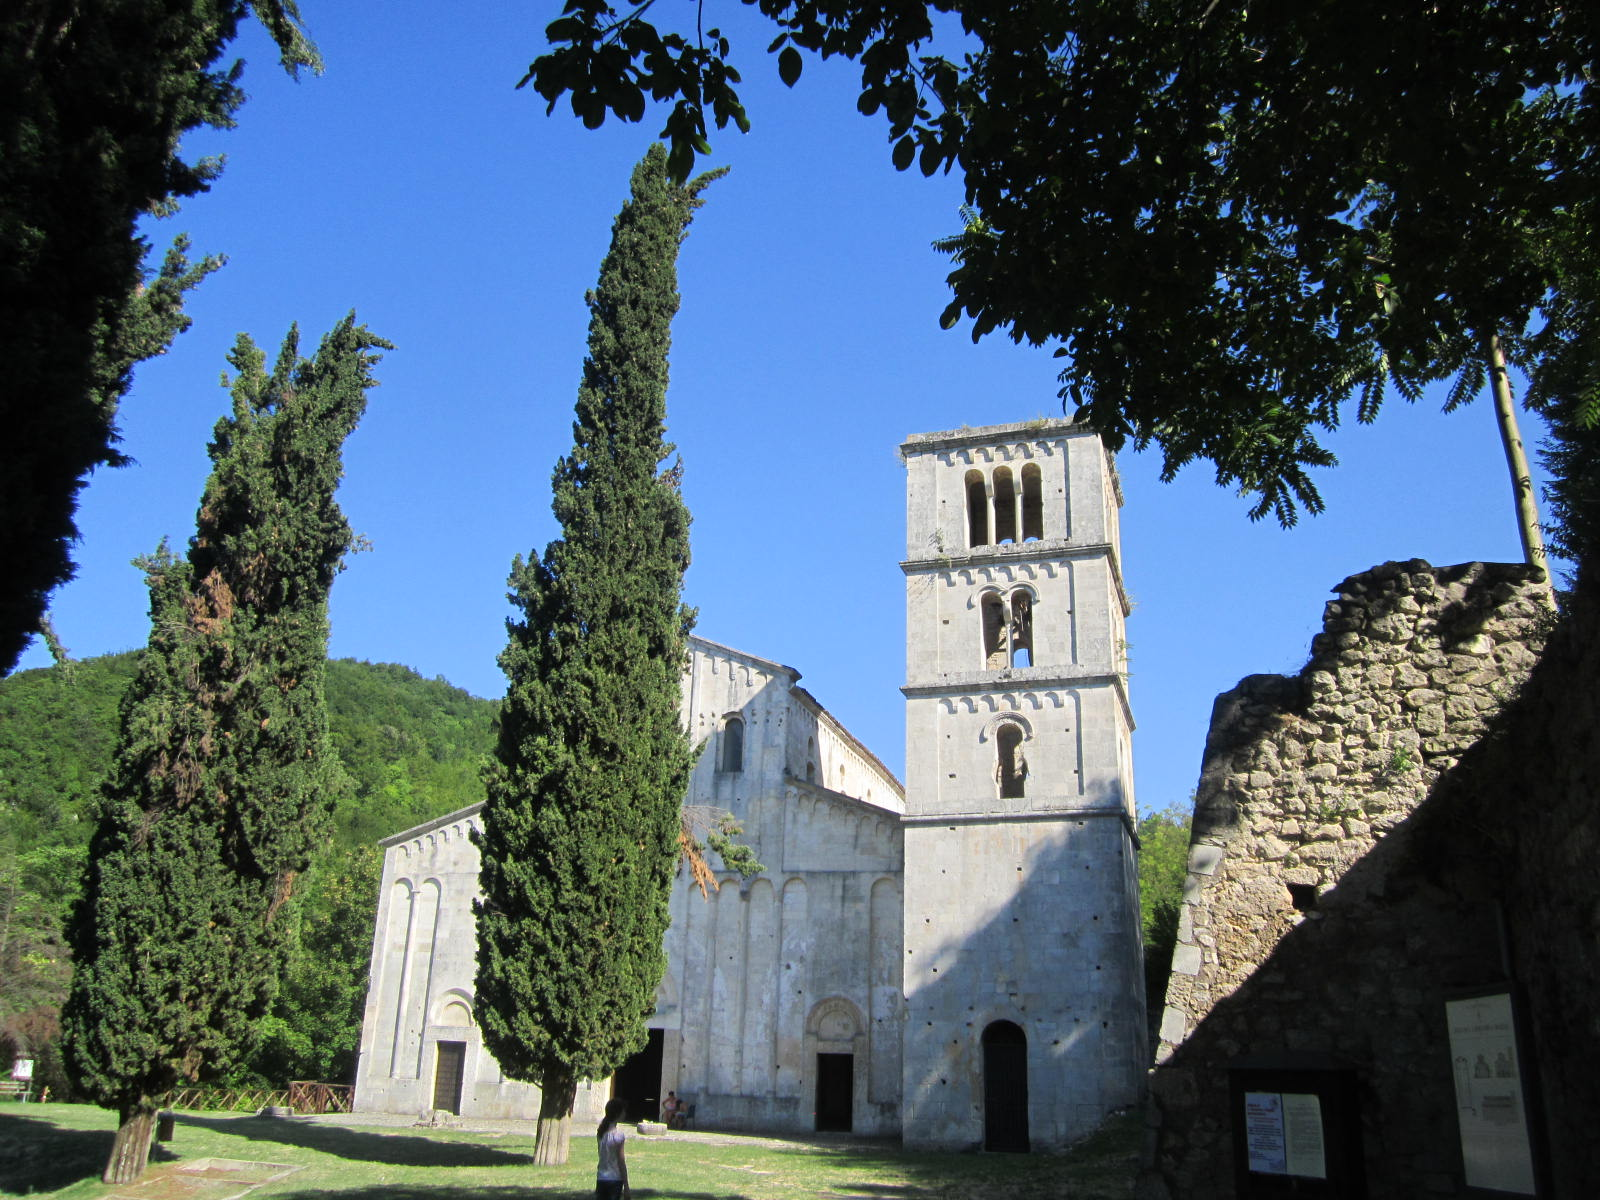 Enchanting Italy: Hermitages and Churches in Abruzzo